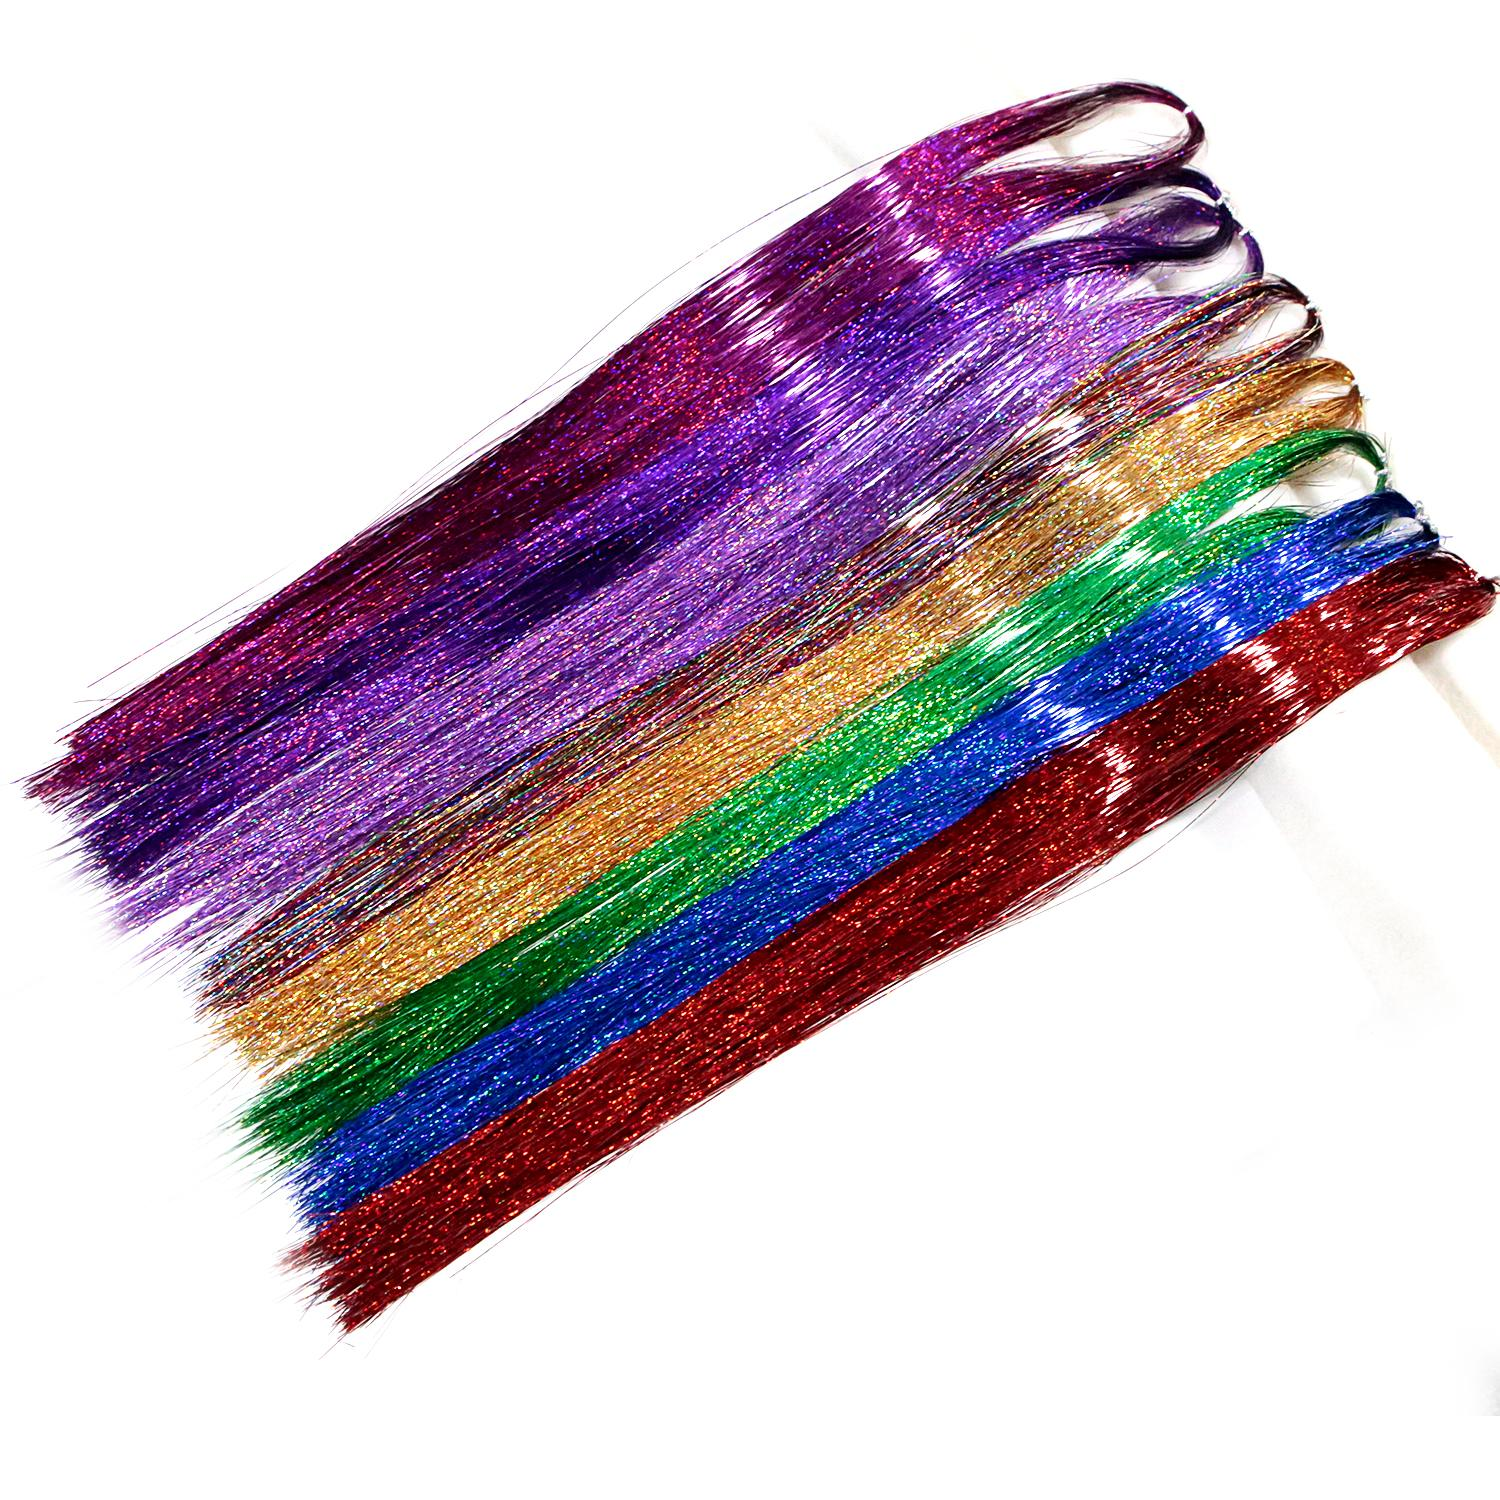 New Arrival Neitsi 35 1120 Strands Pack Straight Hair Tinsel Sparkle Glitter Twinkle Rainbow Colors Festival For Party Cosplay